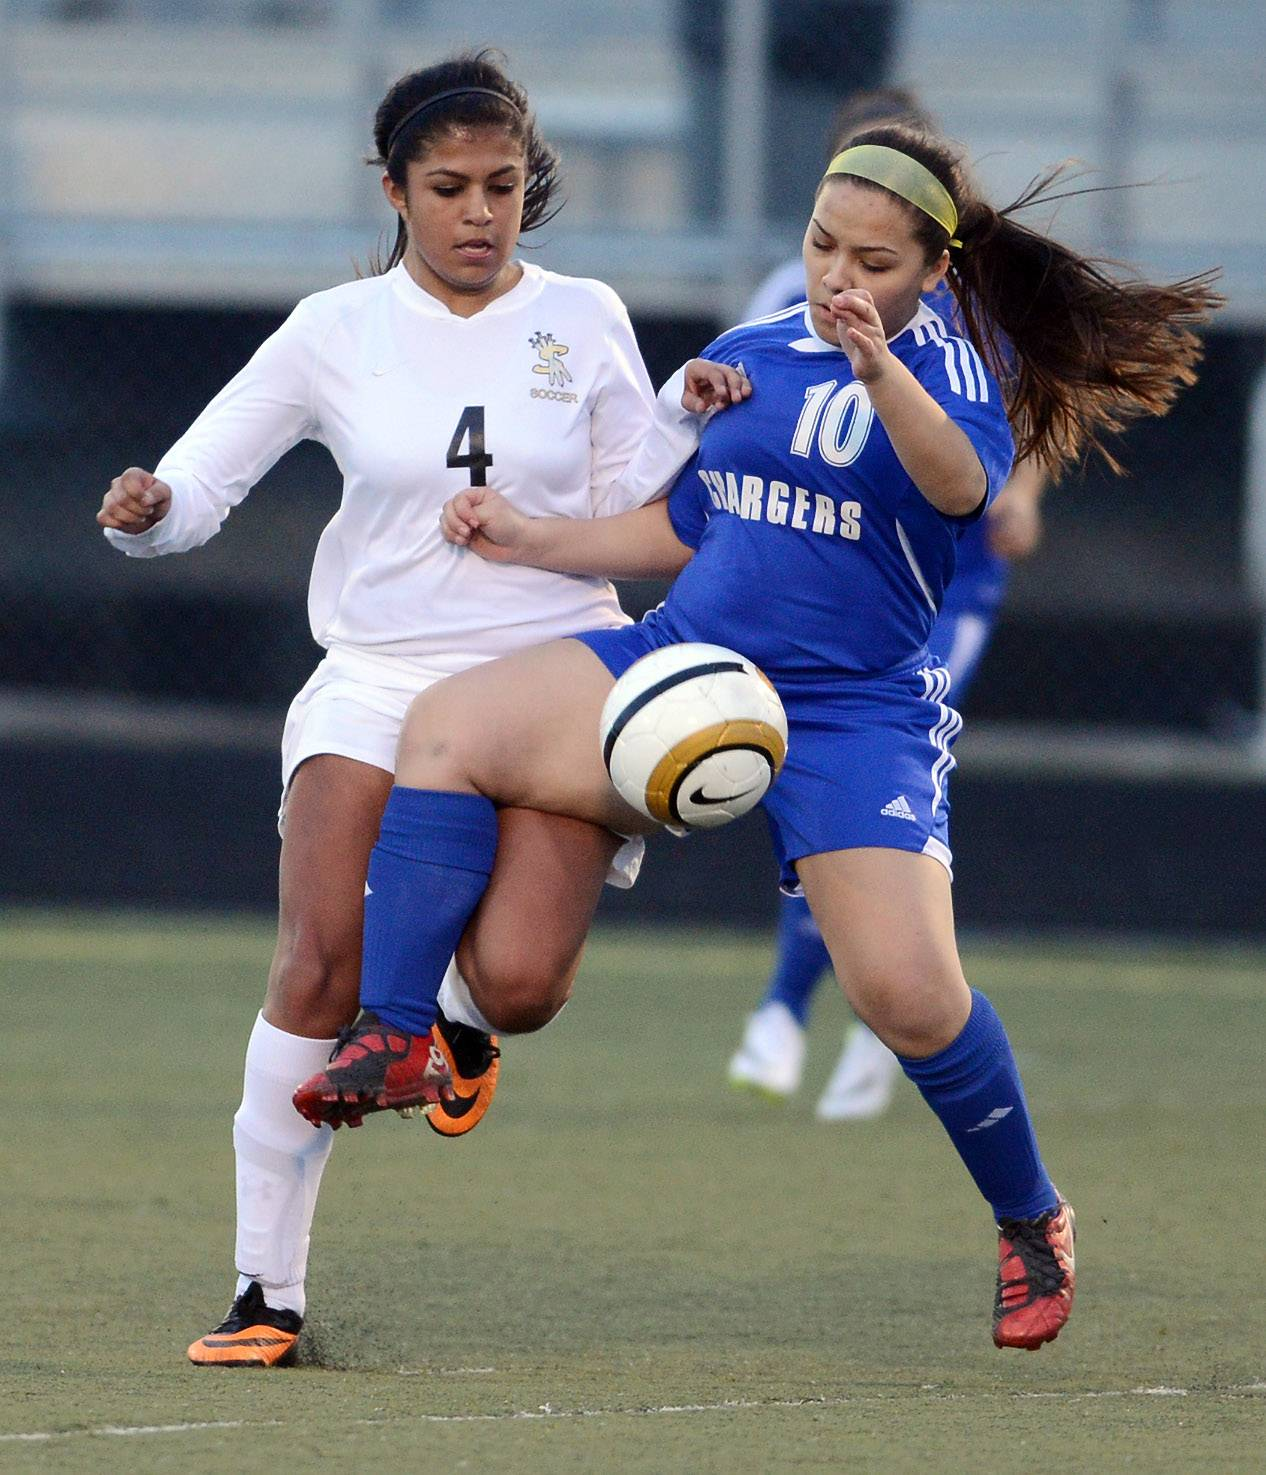 Streamwood's Cassandra Adan (4) and Dundee-Crown's Heily Ramirez (10) battle for the soccer ball during Tuesday's game in Streamwood.